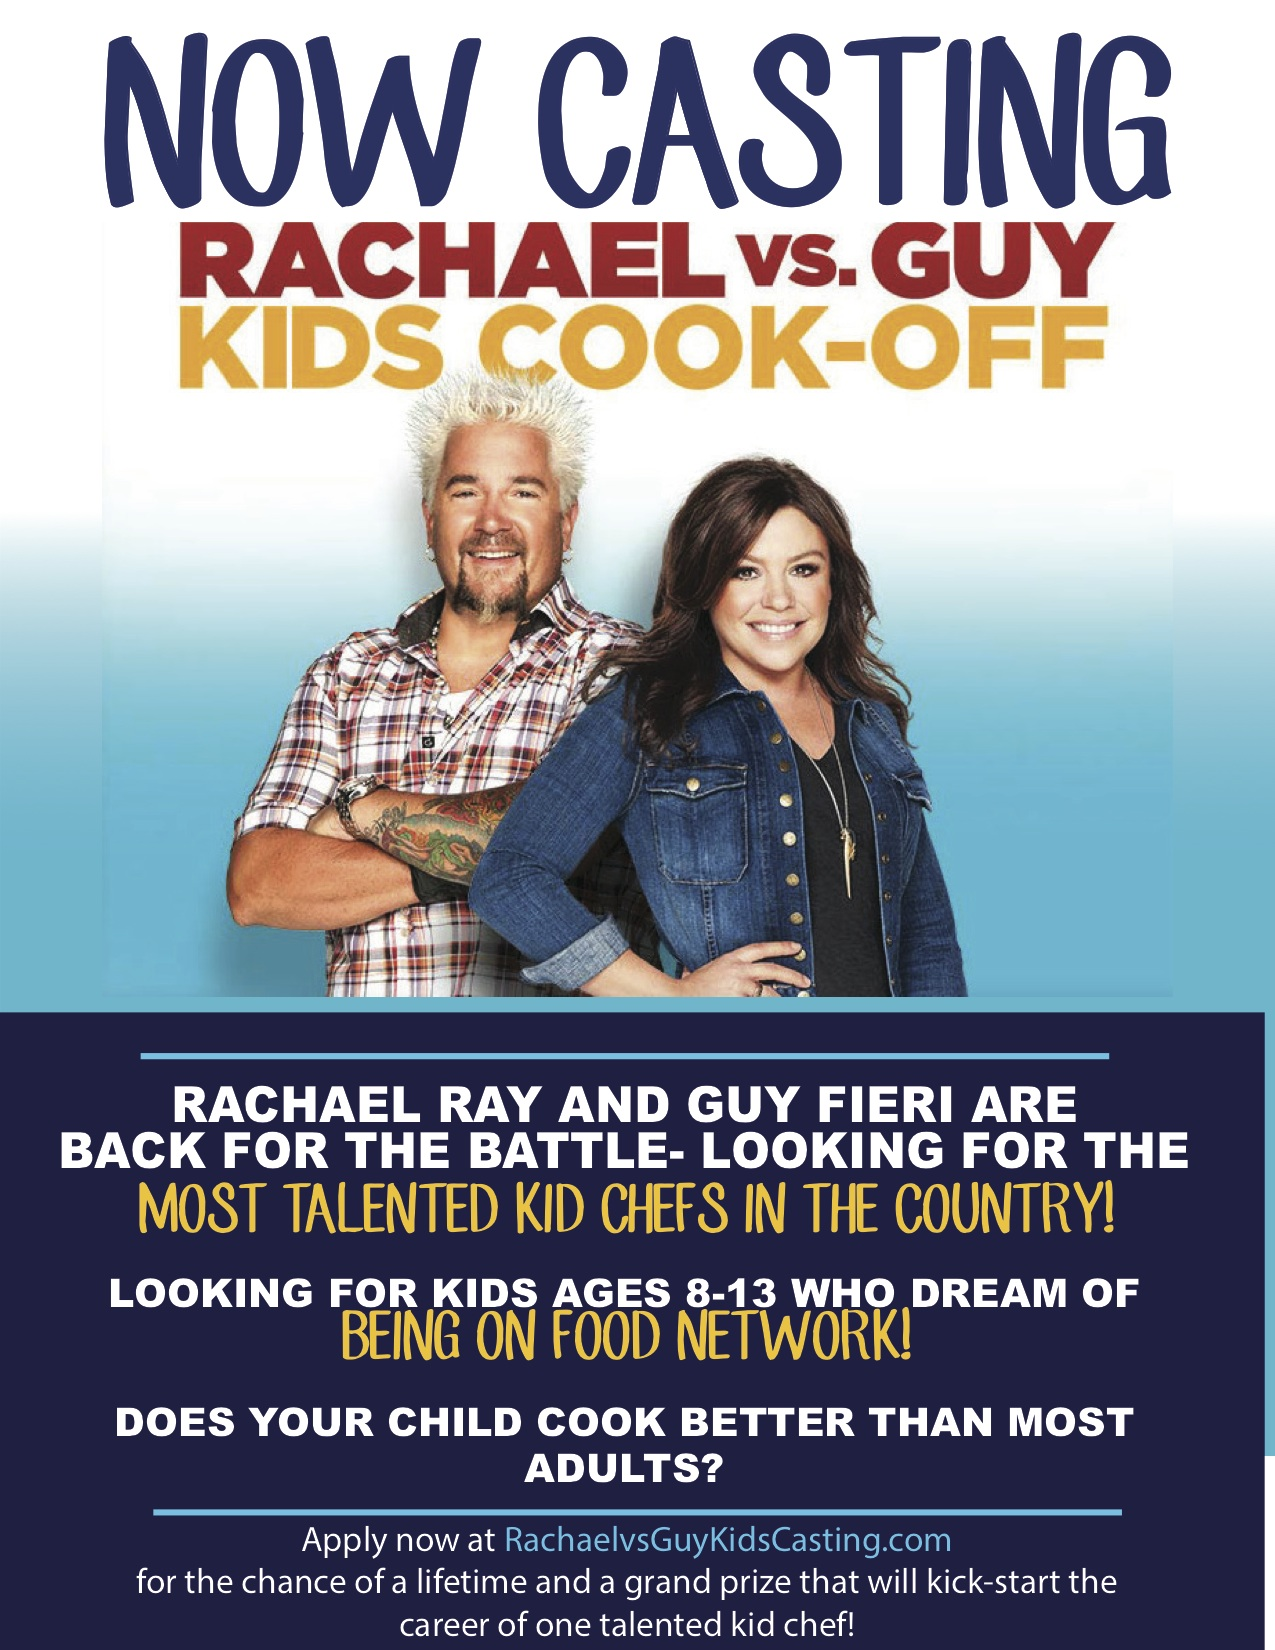 Rachael vs Guy : Kids Cook-Off on Food Network